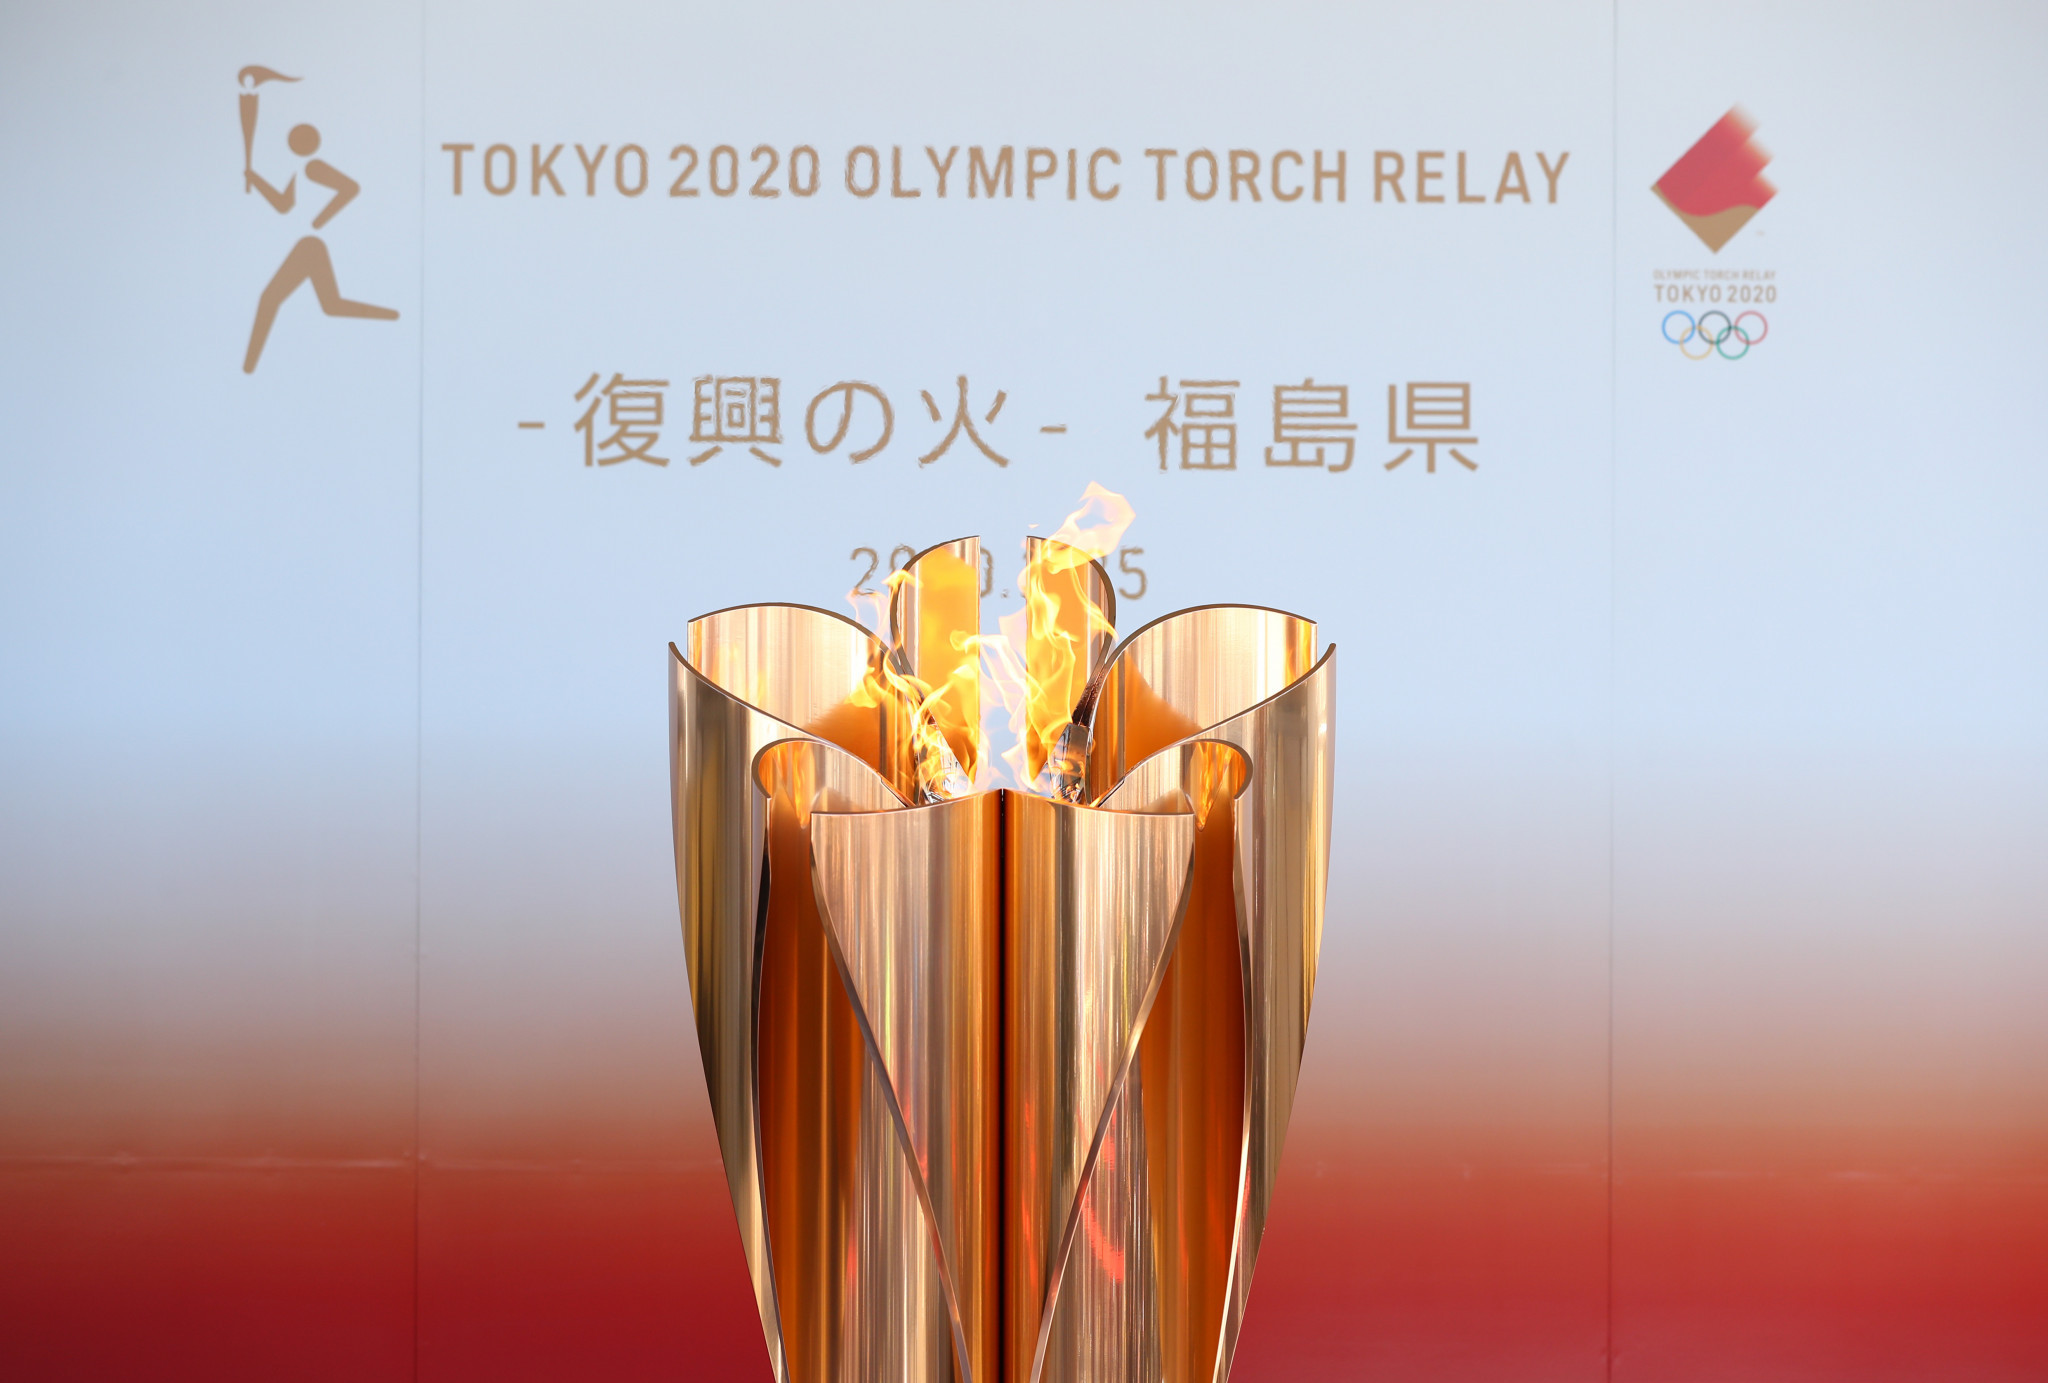 Schedule announced for Tokyo leg of Olympic Torch Relay with nod to 1964 Games planned